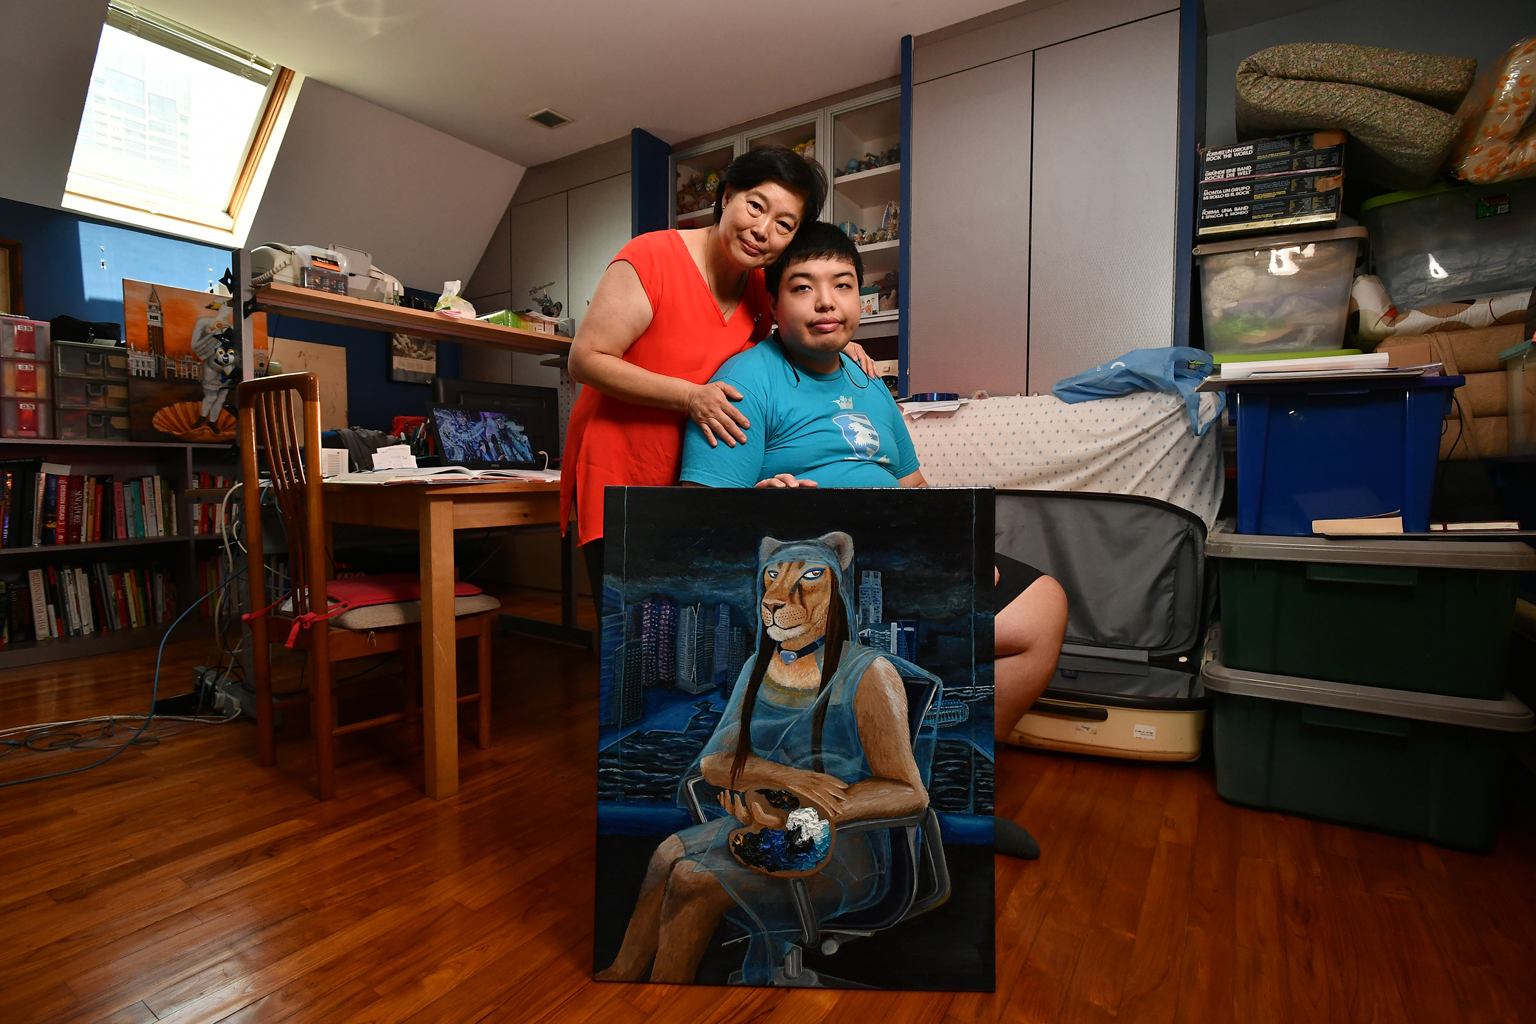 """ST10022017-1704155990-Lim Yaohui/WONG KIM HOH/ //Mrs Leong Geok Hoon, 60, Founder of Adelaide Harvests, with her son, Mr Leong Keat Mun, 24, Undergraduate, at home on Feb 10, 2017. He is holding an acrylic painting, titled """"La Gioconda come una Leonessa - Laboratorio di Fotographia"""" that he painted. //For It Changed My Life series. When her youngest son was diagnosed as autistic, Tan Geok Hoon, a former high flying banker, started raising awareness about the condition including helping to found the Autism Resource Centre. She recently started an online business selling artisanal Aussie products while her autistic son completes his product design degree in Australia. (ST PHOTO: LIM YAOHUI)##########khgeok##########LIM YAOHUI"""